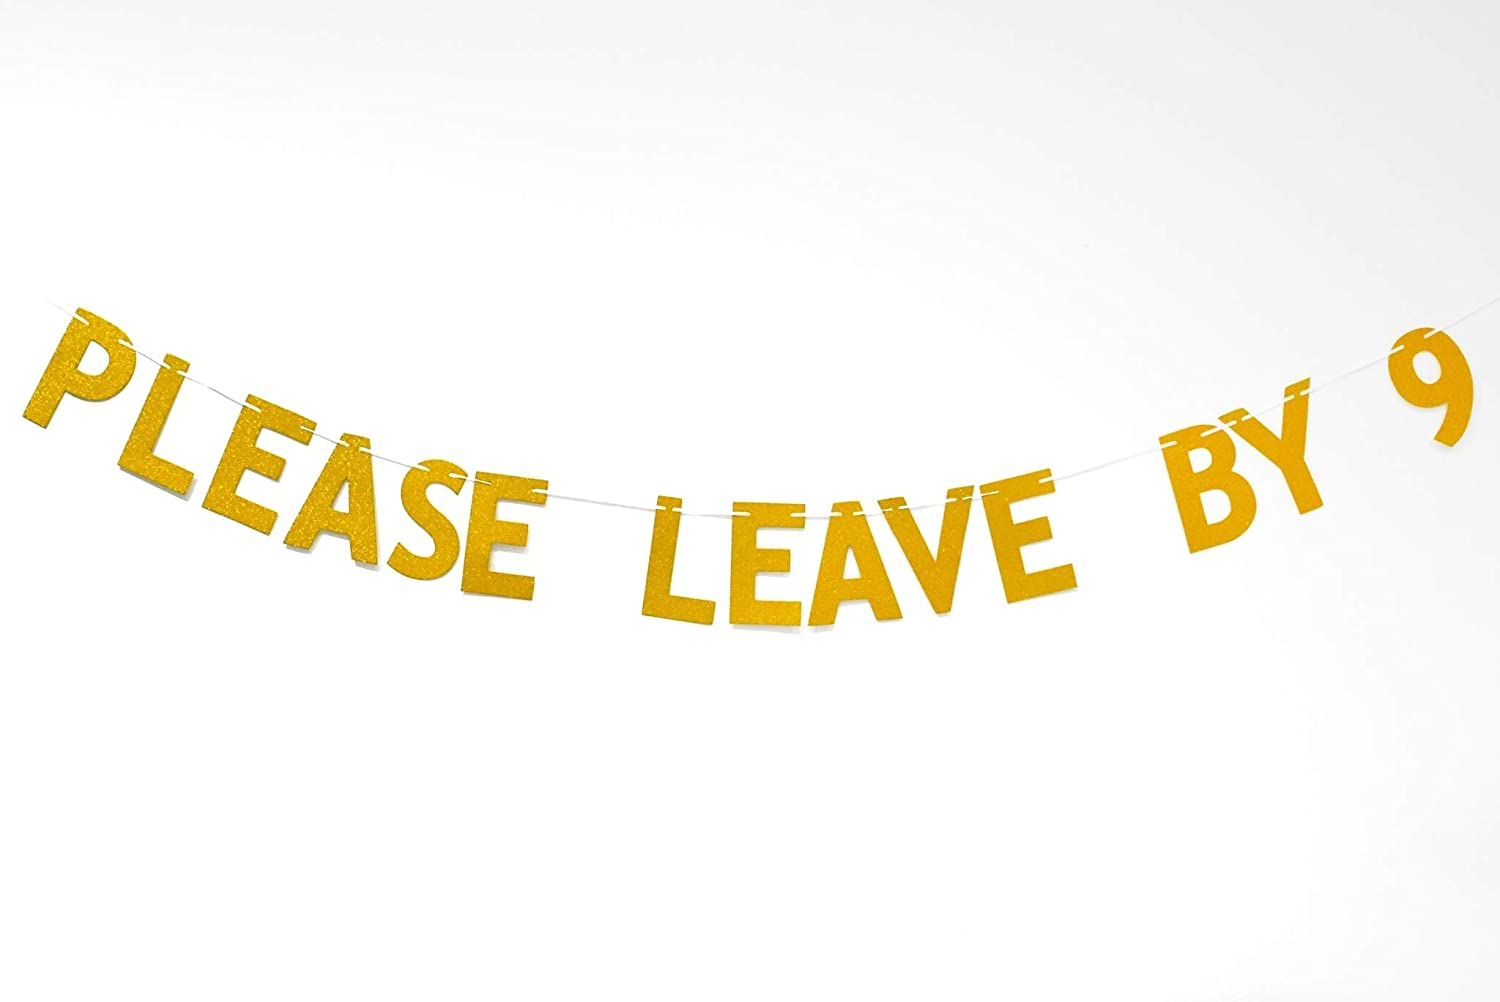 Please Leave by 9 Banner - Funny Rude - Funny Birthday - Customize Your Party - Holiday Party - Housewarming Party - Hanging Letter Sign - Party Banner (Gold)